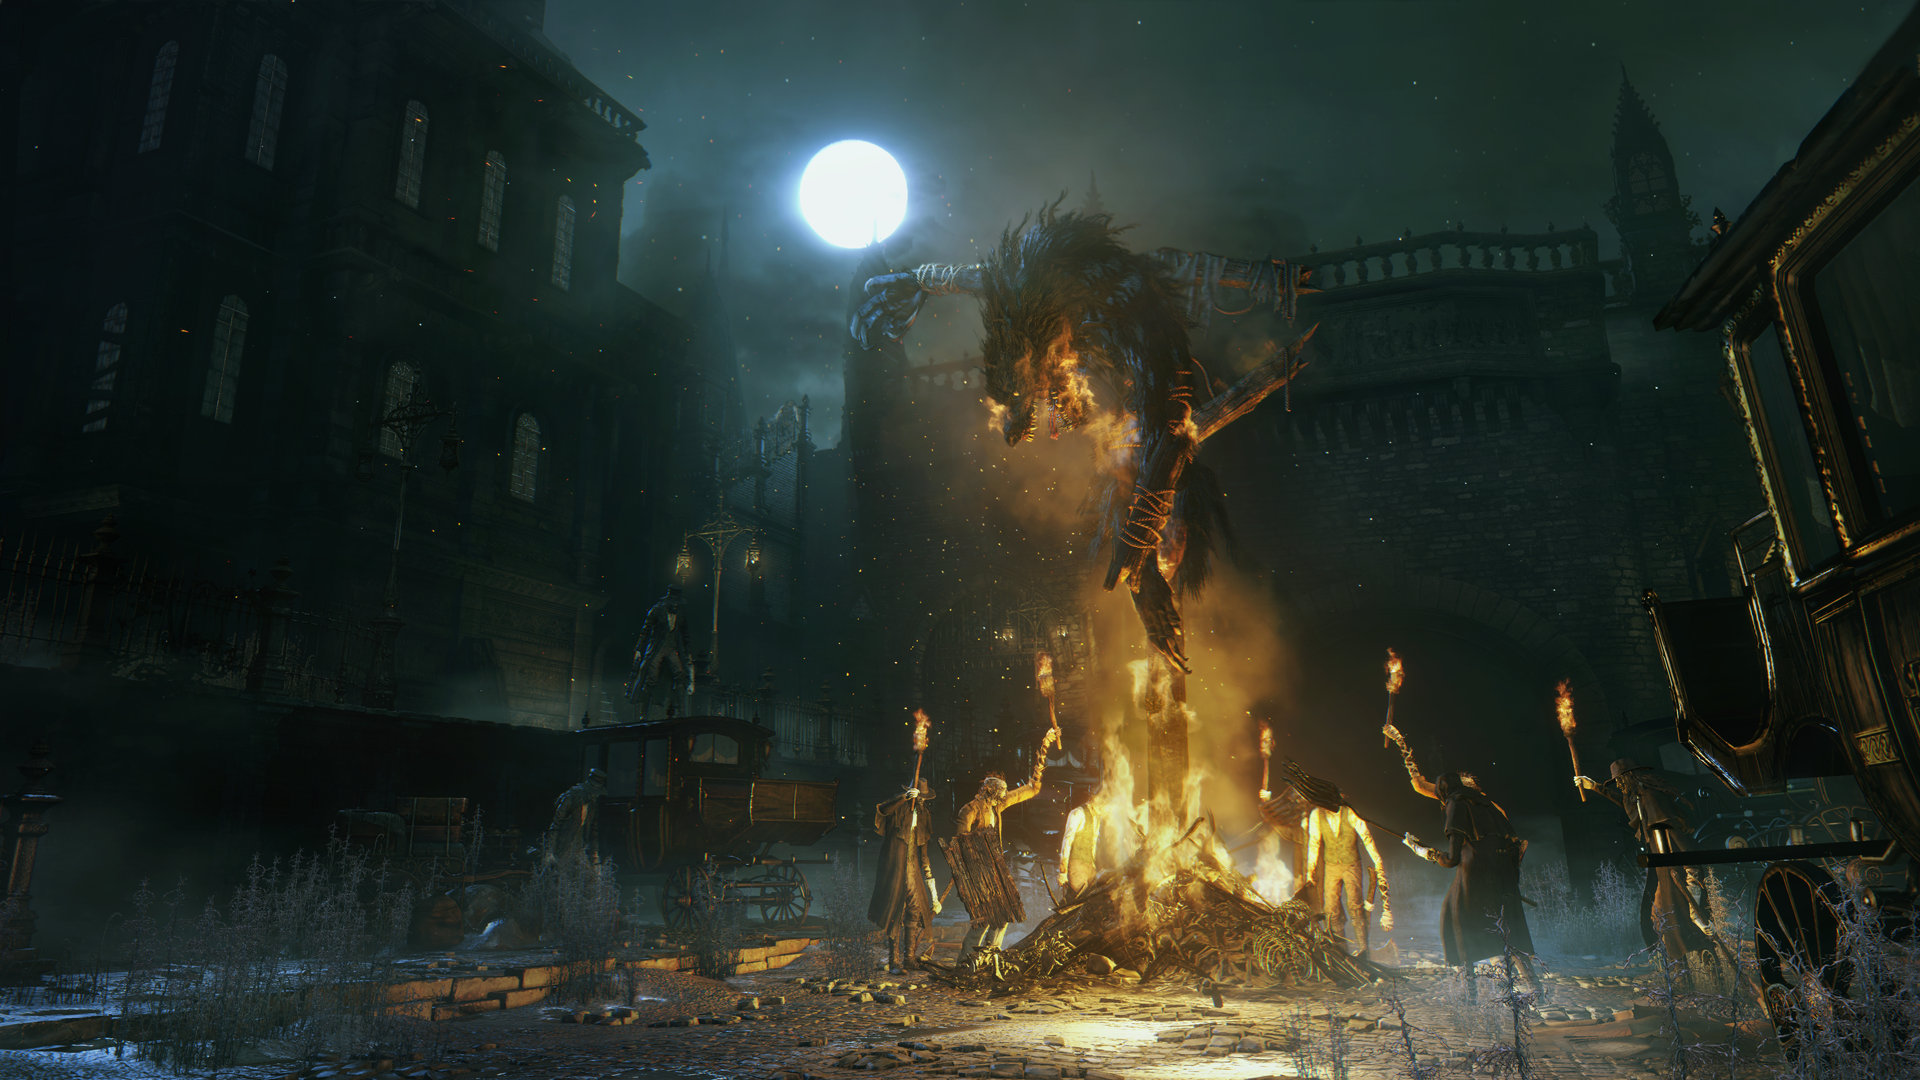 The large crowds of actual people are one of the least <i>Dark Souls</i>-like parts of <i>Bloodborne</i>.